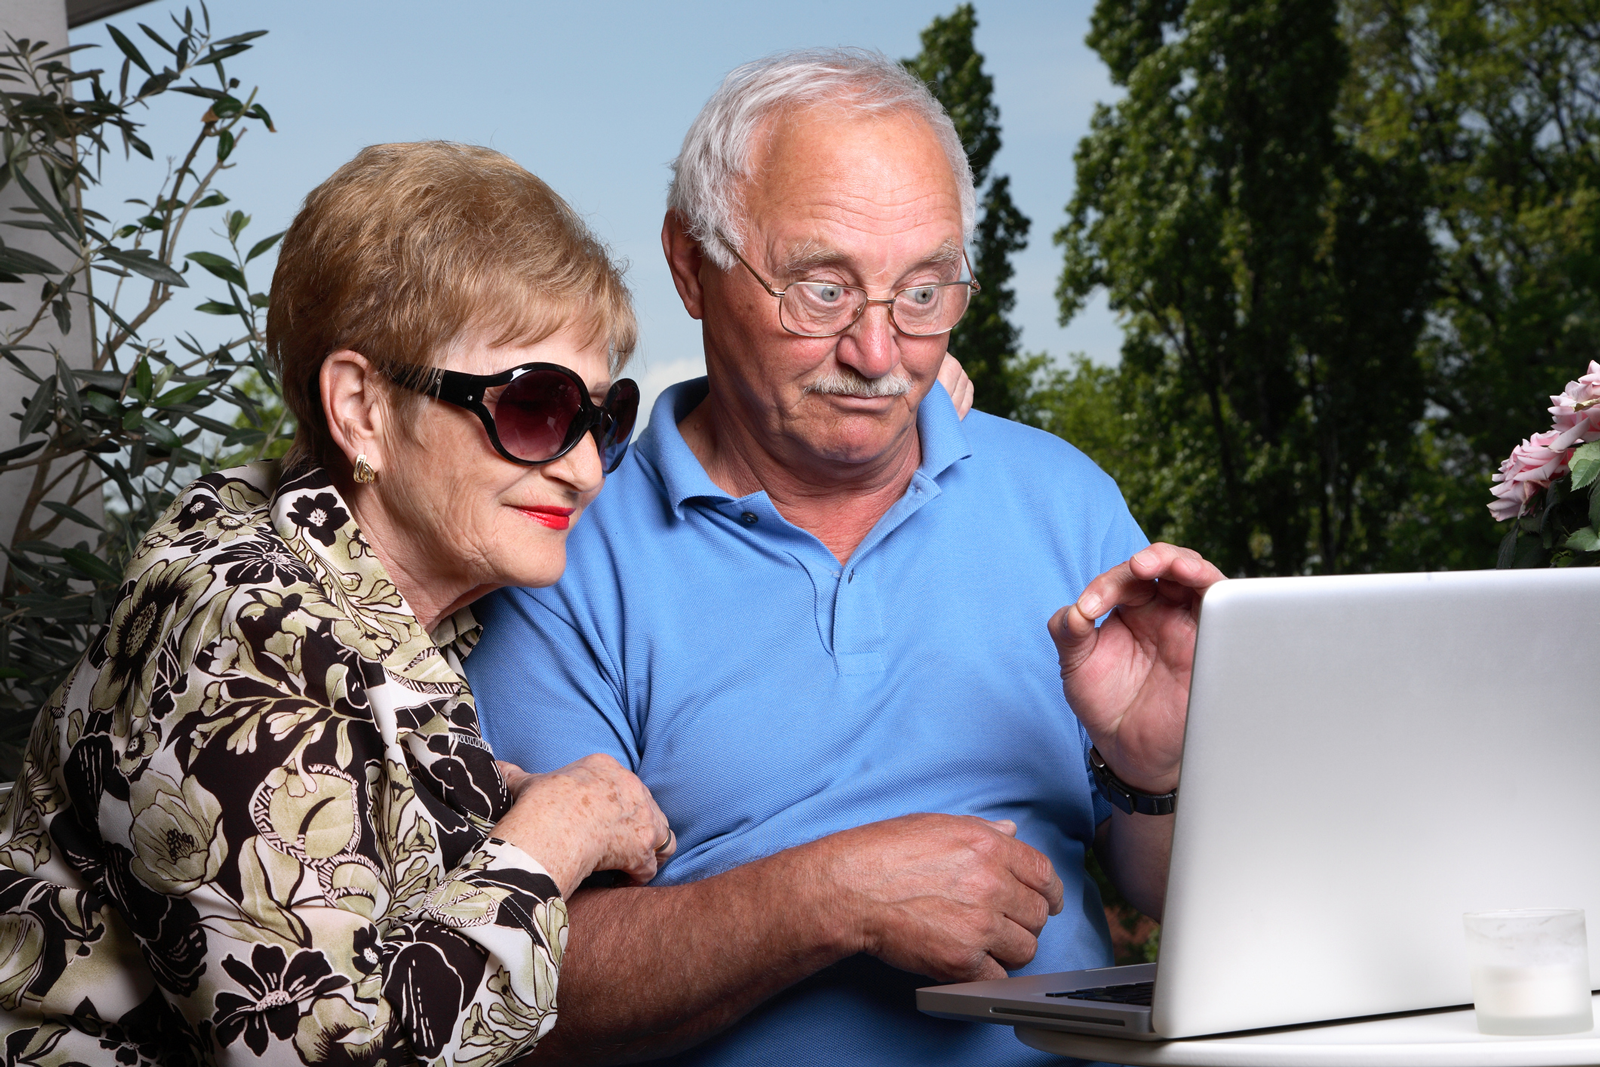 eLearning Webinar Promotion Best Practices – Easy Enough for Grandpa